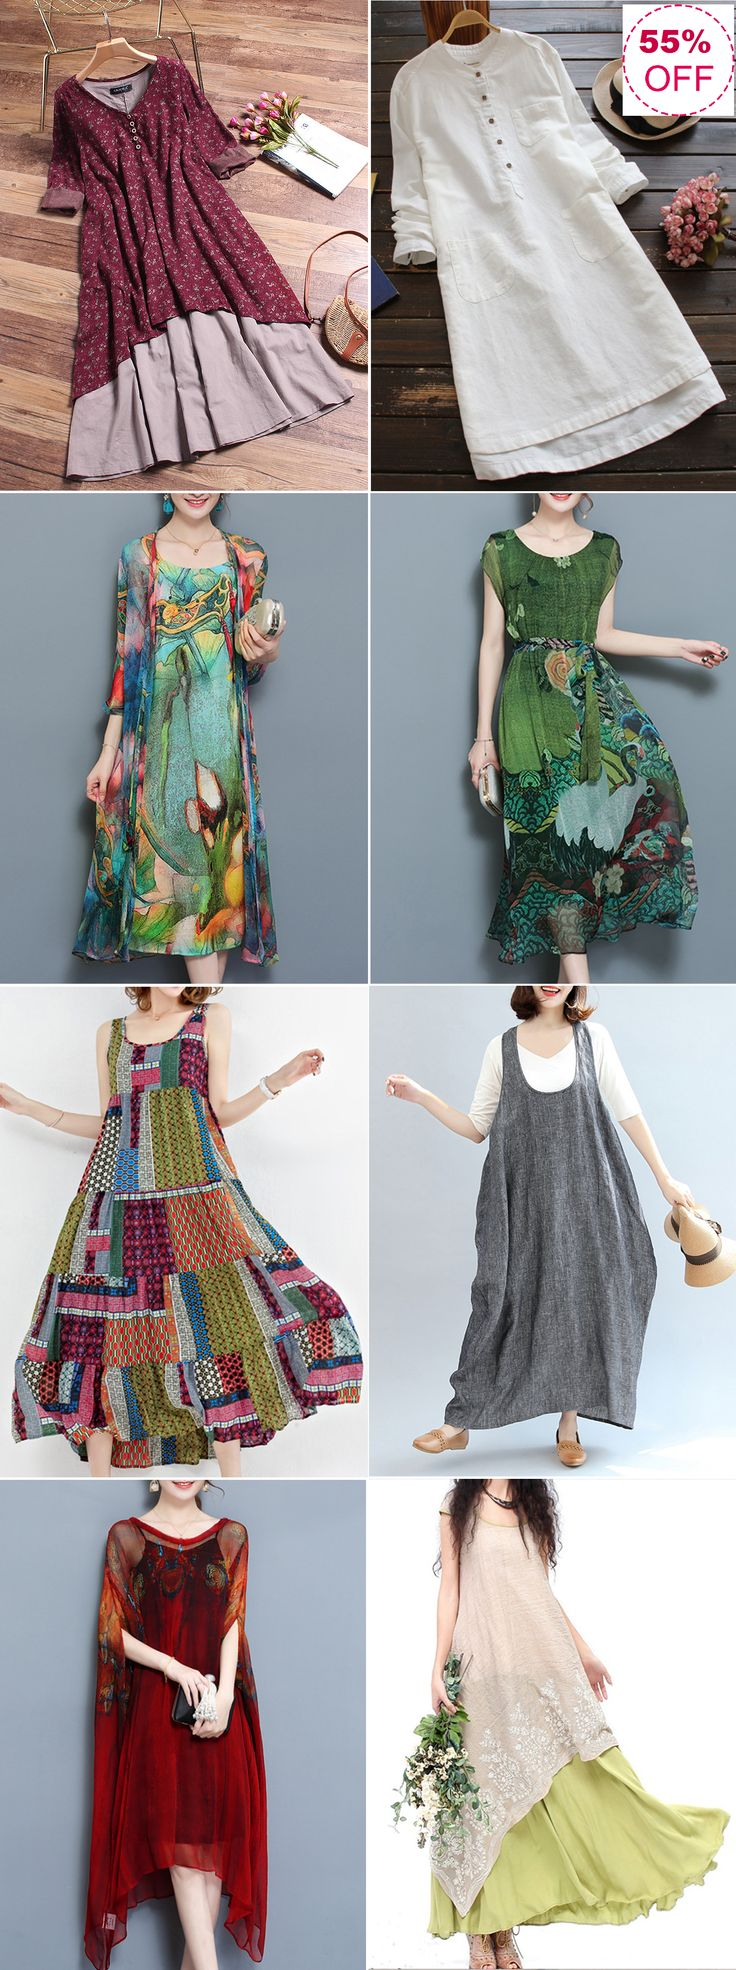 UP TO 55% OFF! Find Fashion, Vintage,Floral and Maxi Dresses on Newchic.Shop Now!